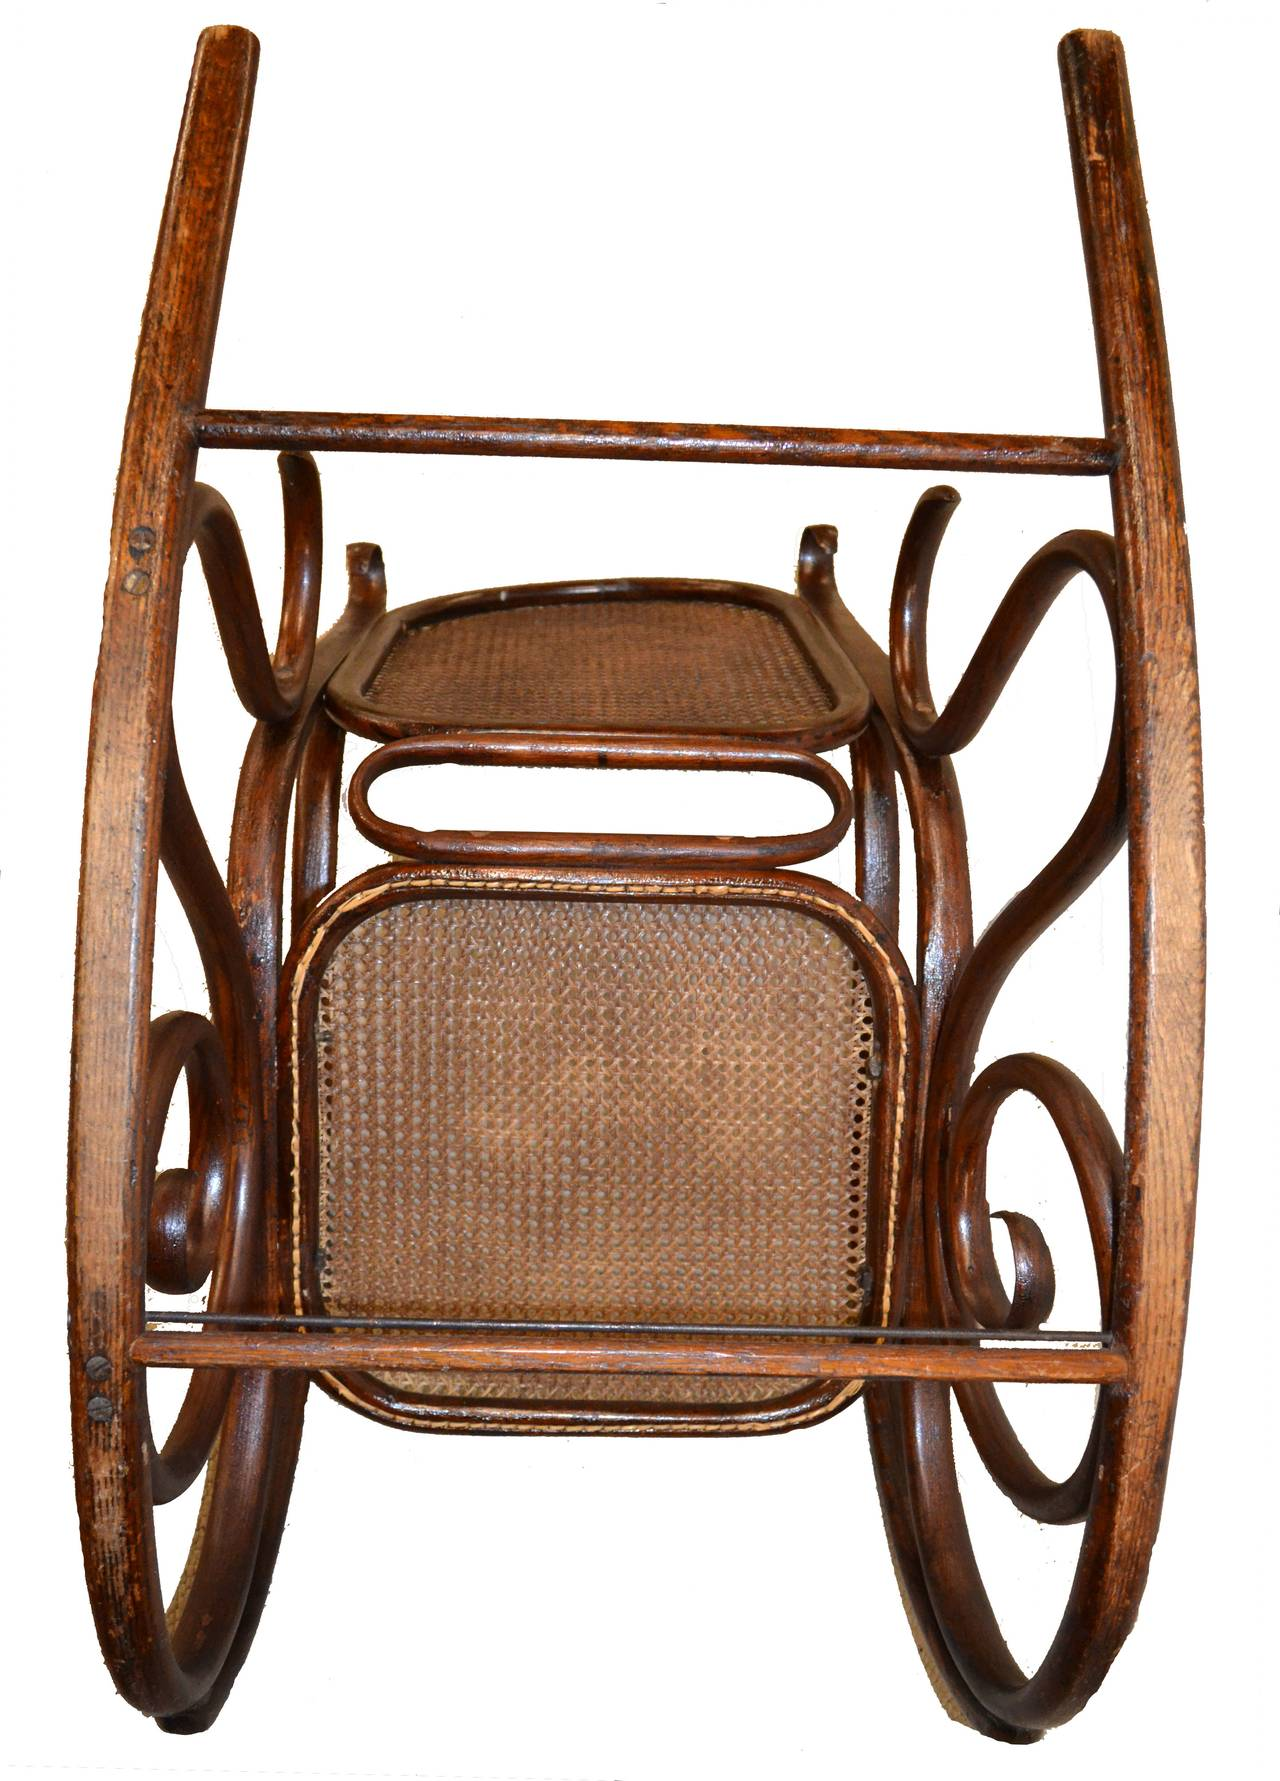 Original white painted bentwood rocking chair is no longer available - 19th Century Thonet Bentwood Rocker Chair 3